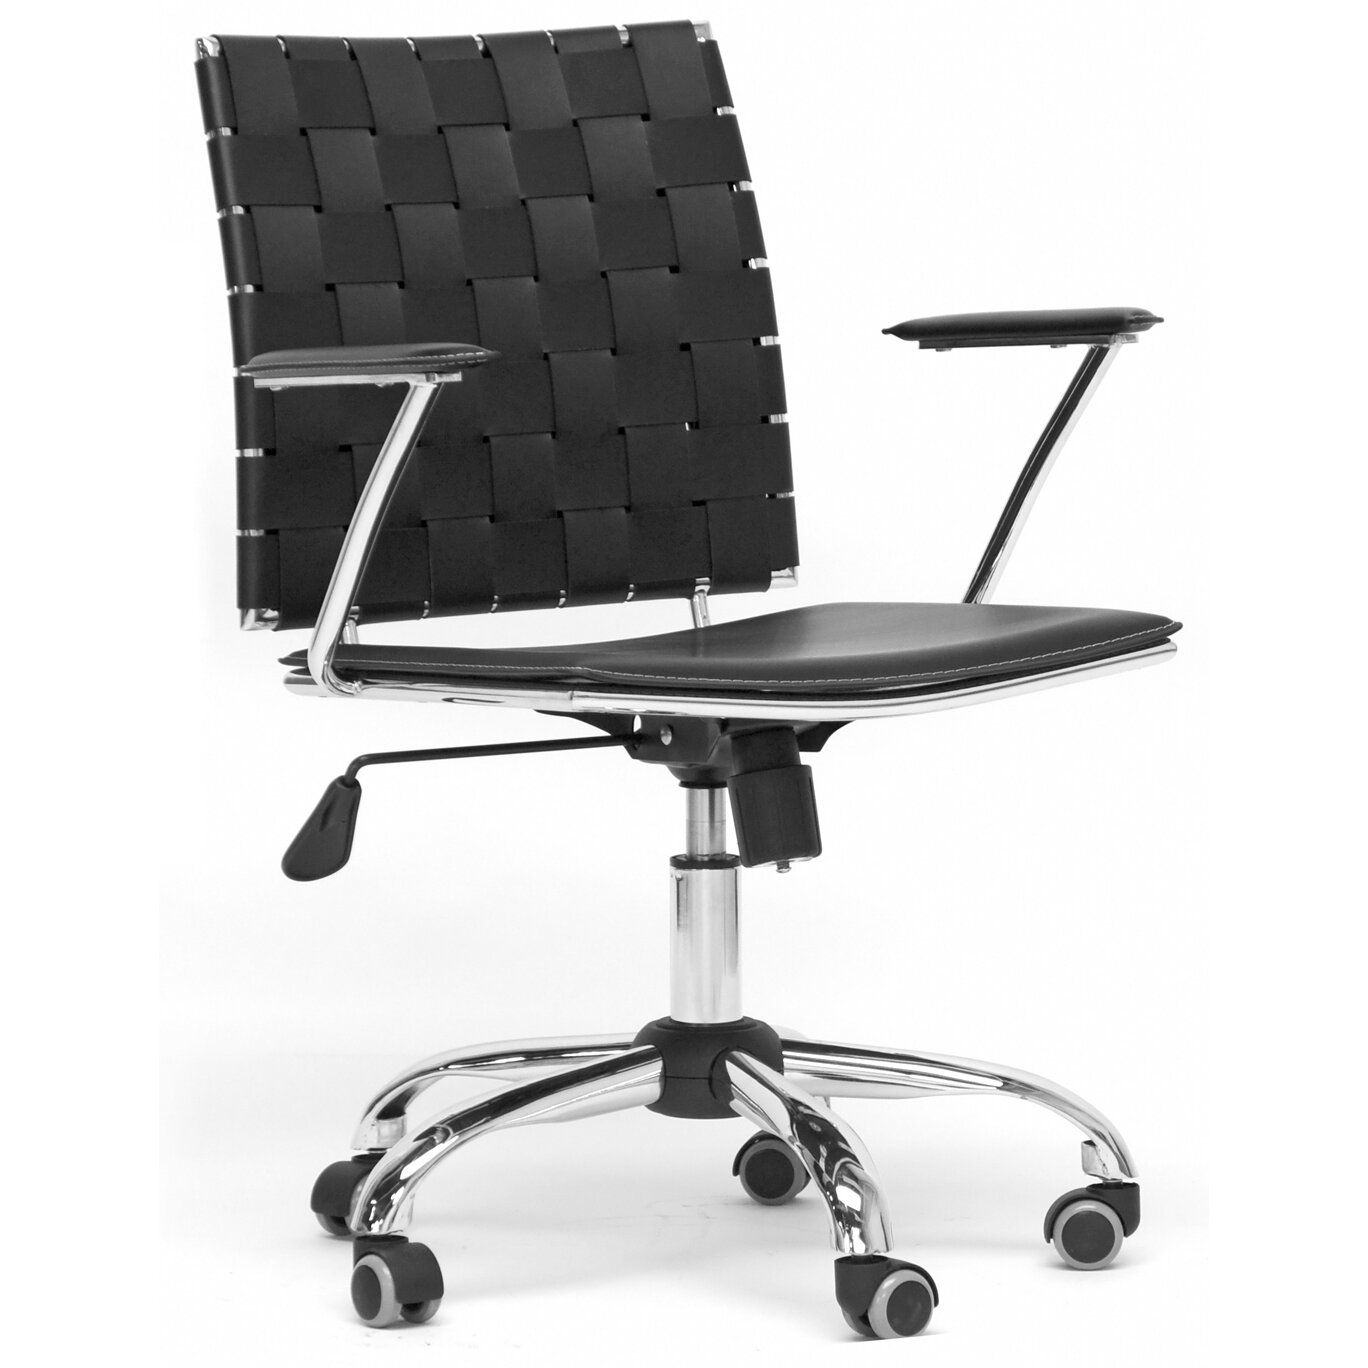 Black and white office chair - Baxton Studio Vittoria Desk Chair